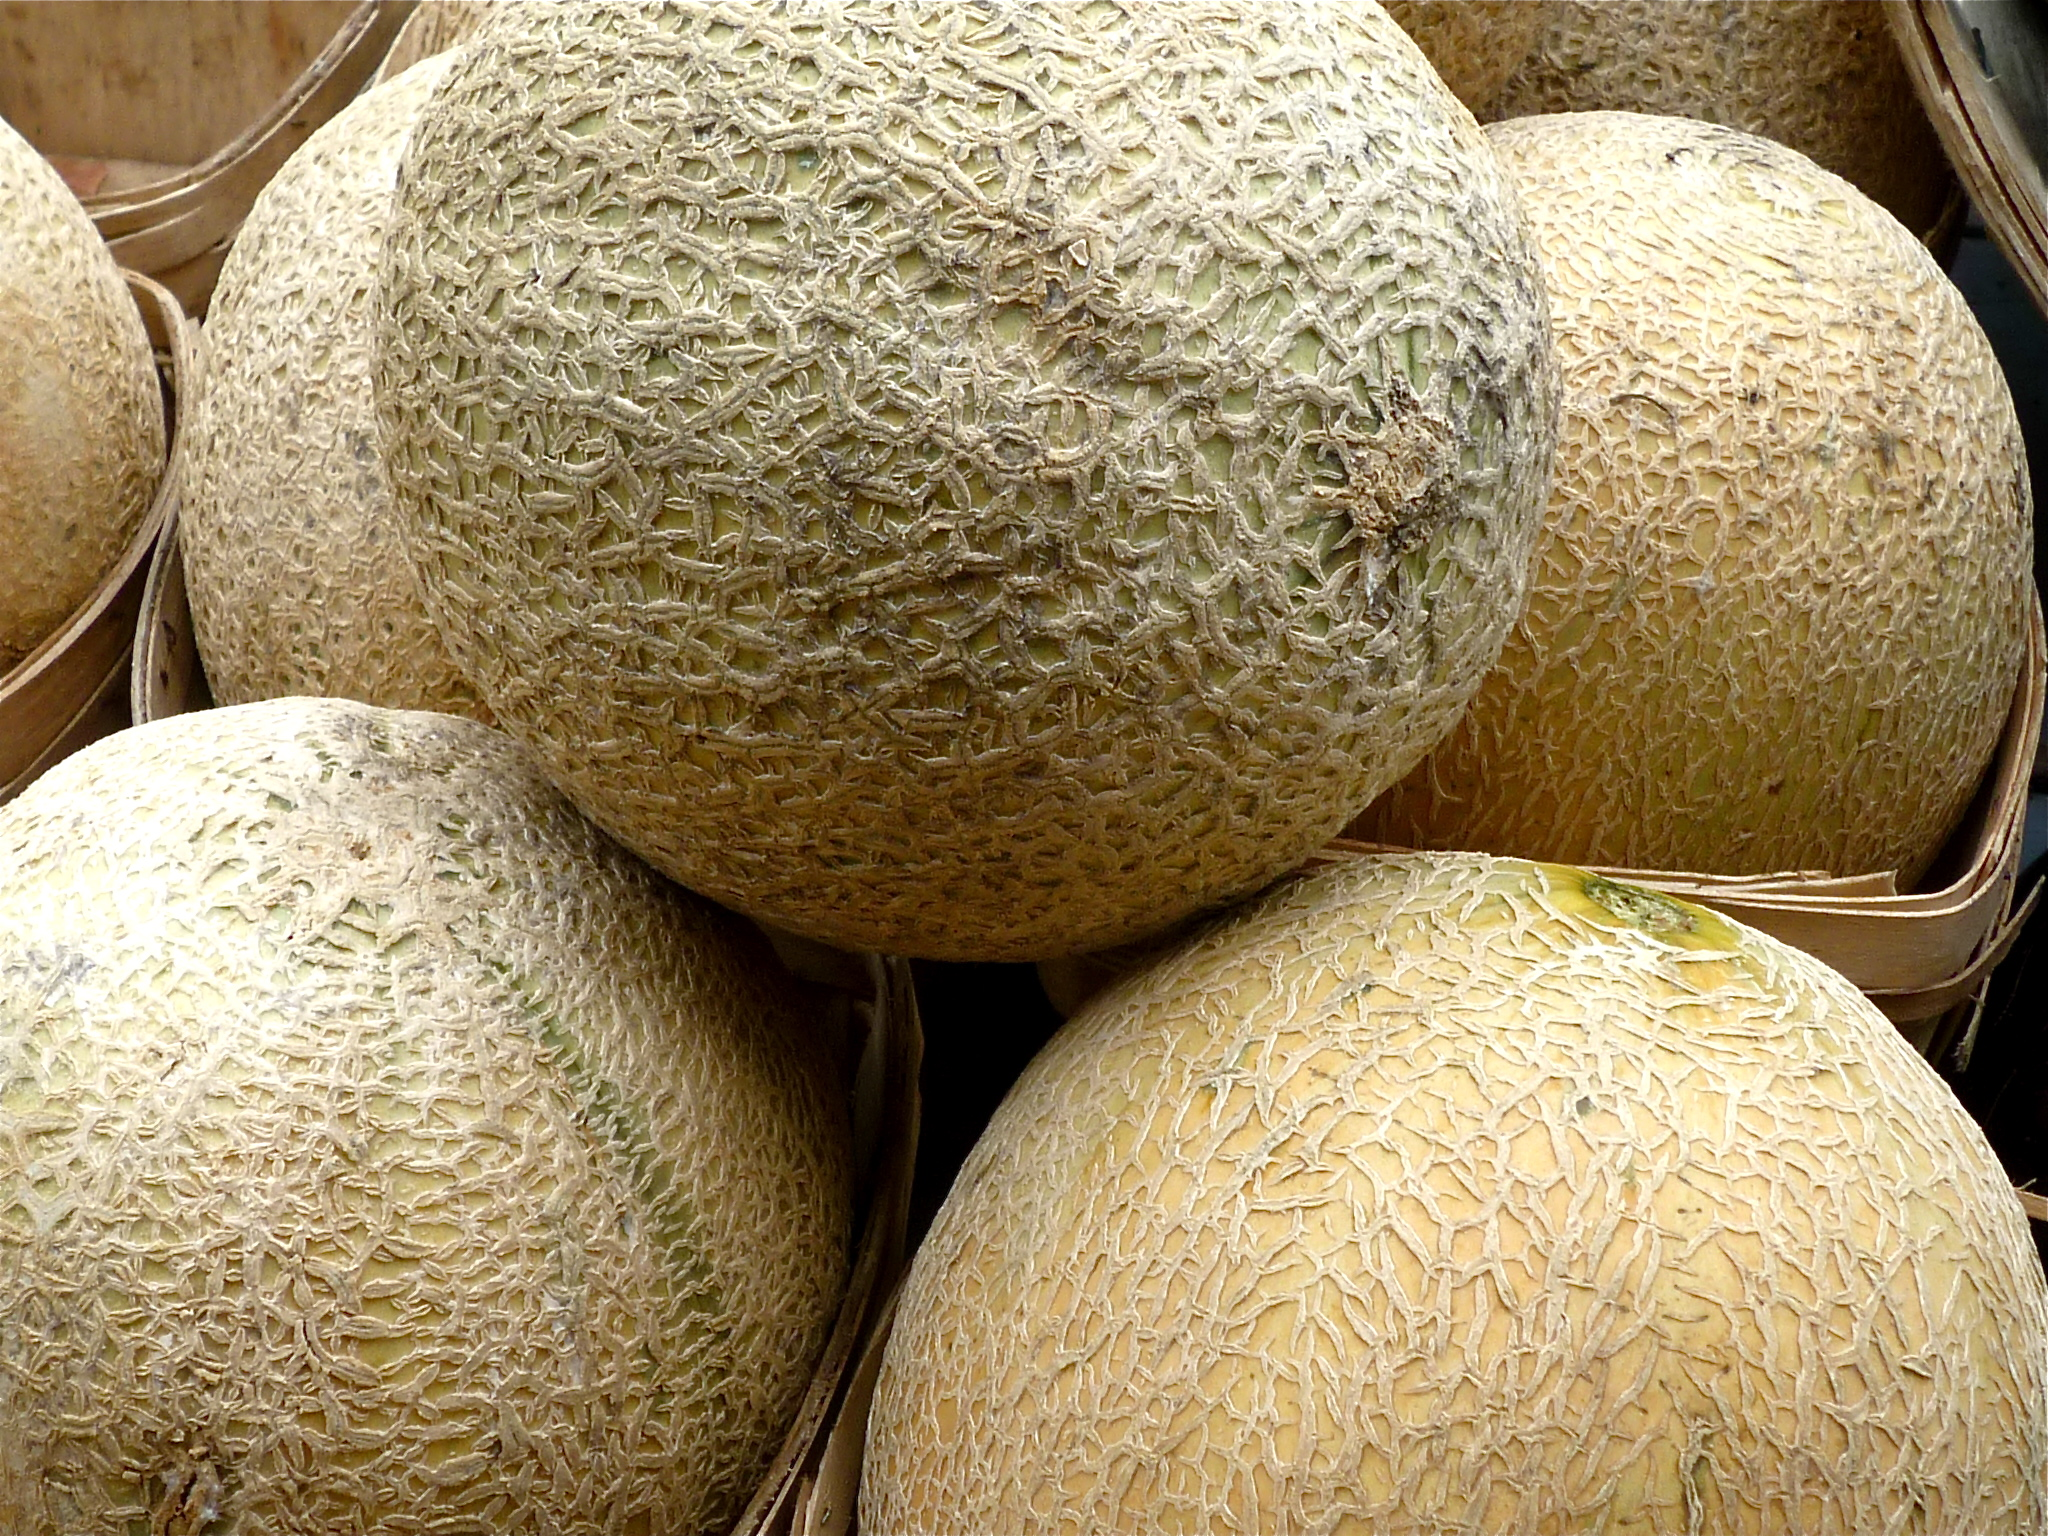 Muskmelons (also commonly called cantaloupe)